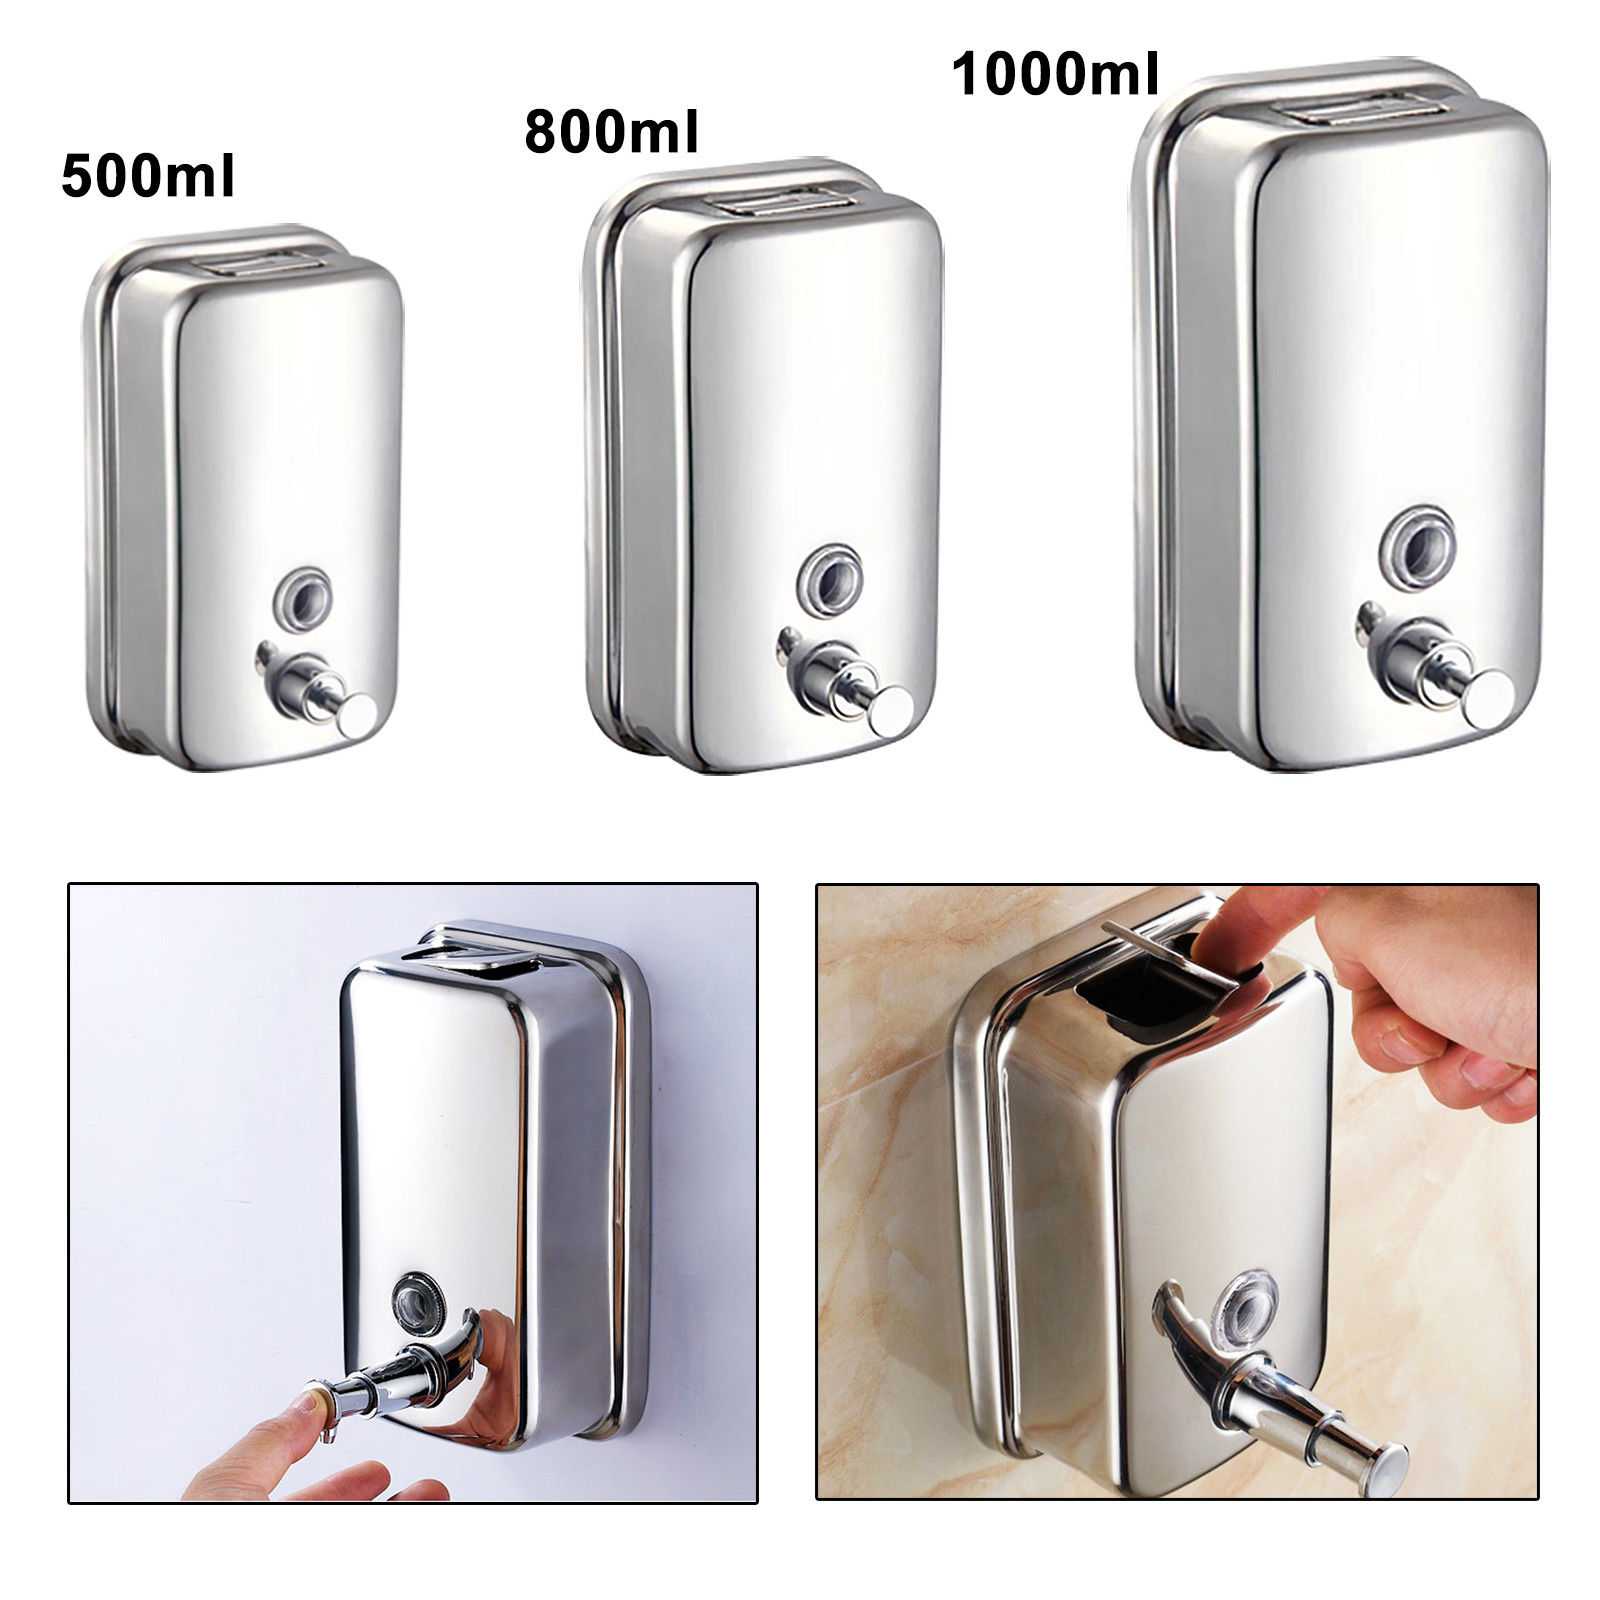 New 500ML / 800ml / 1000ml Dish Shower Bathroom Dispenser Soap Wall Gel Baths Minimalist Modern Cabine De Douche Stainles Steel